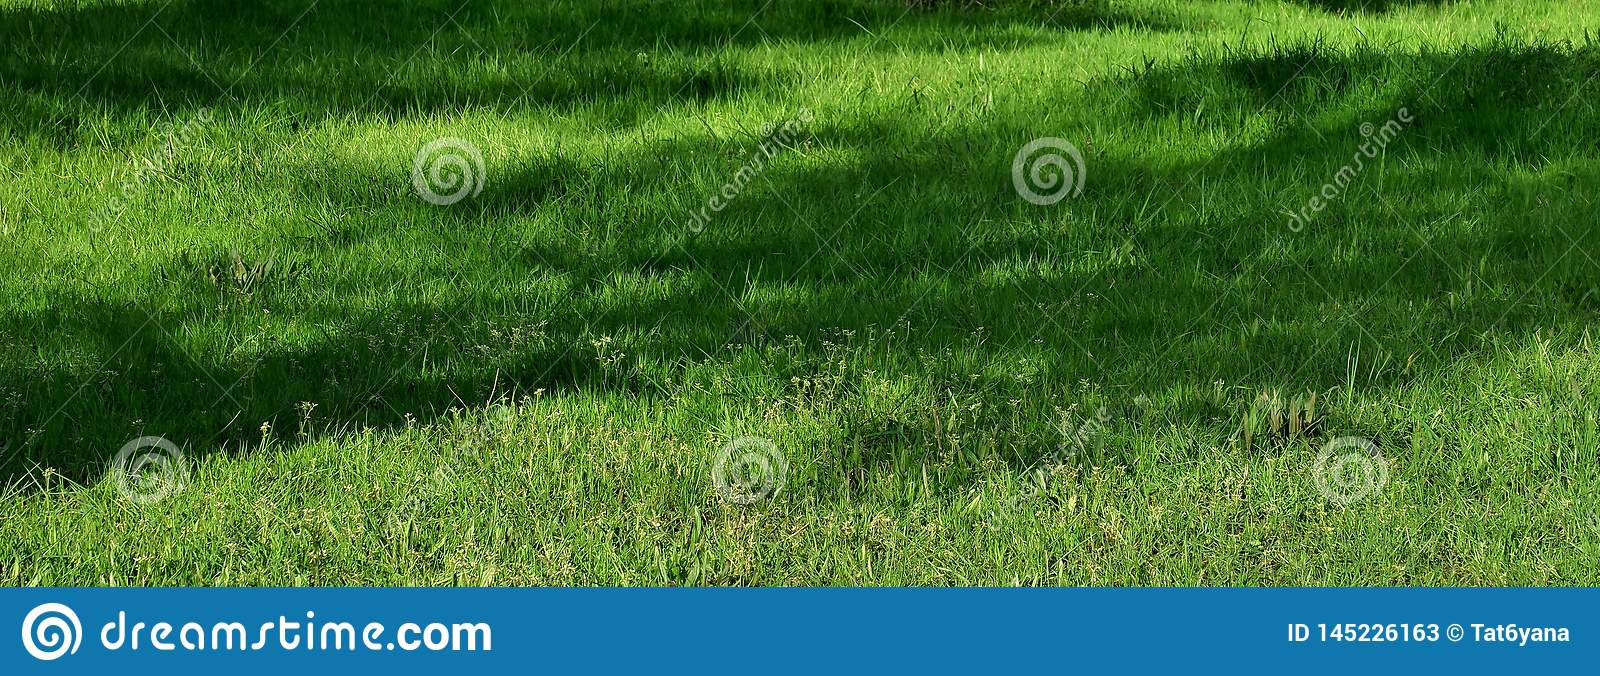 Beautiful background with bright green grass on the lawn